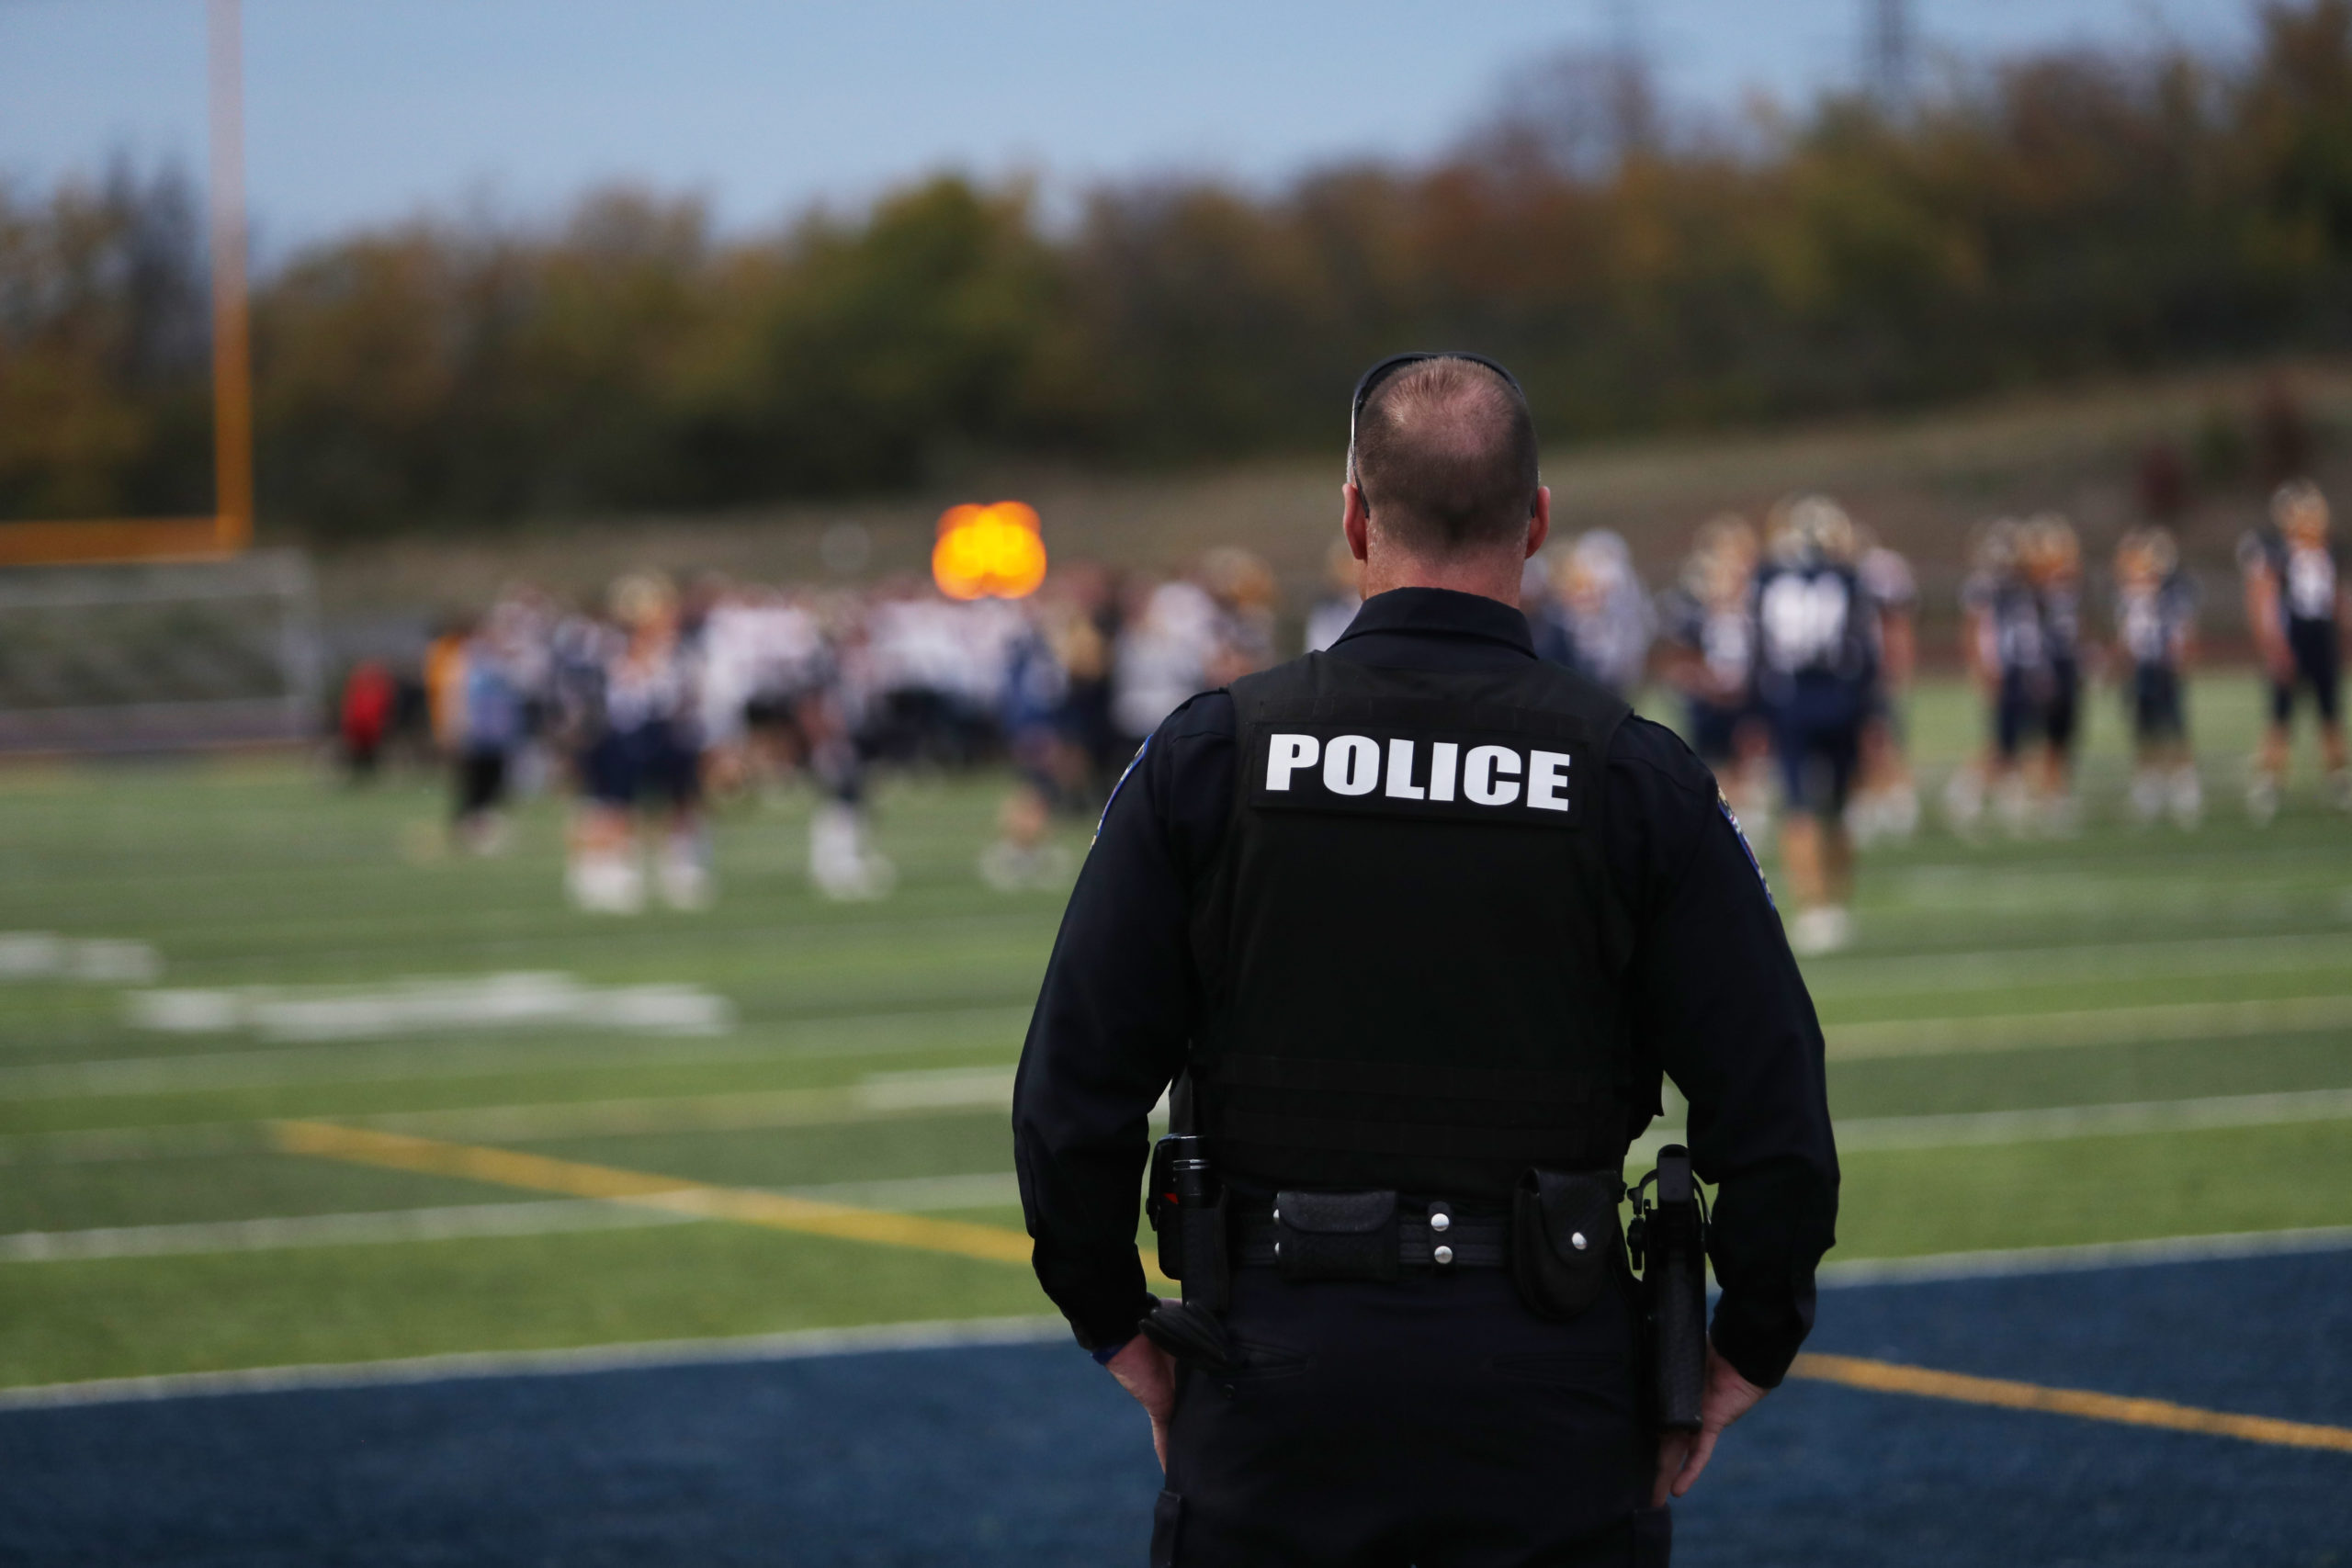 A local police officer works during a high school football game.